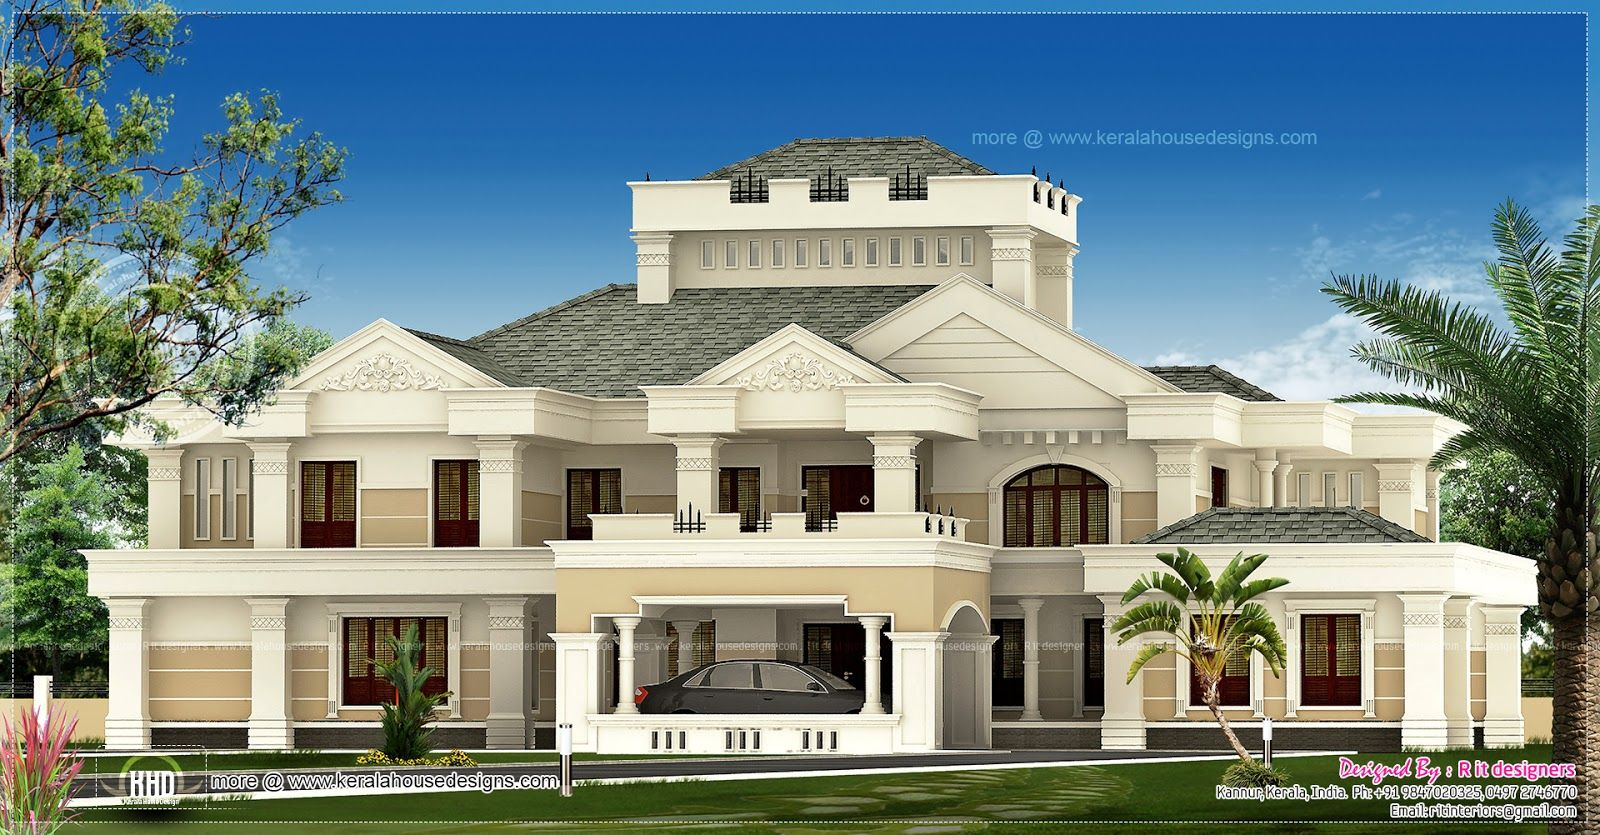 bringing another superb kerala style 4 bedroom house design which is rh pinterest com